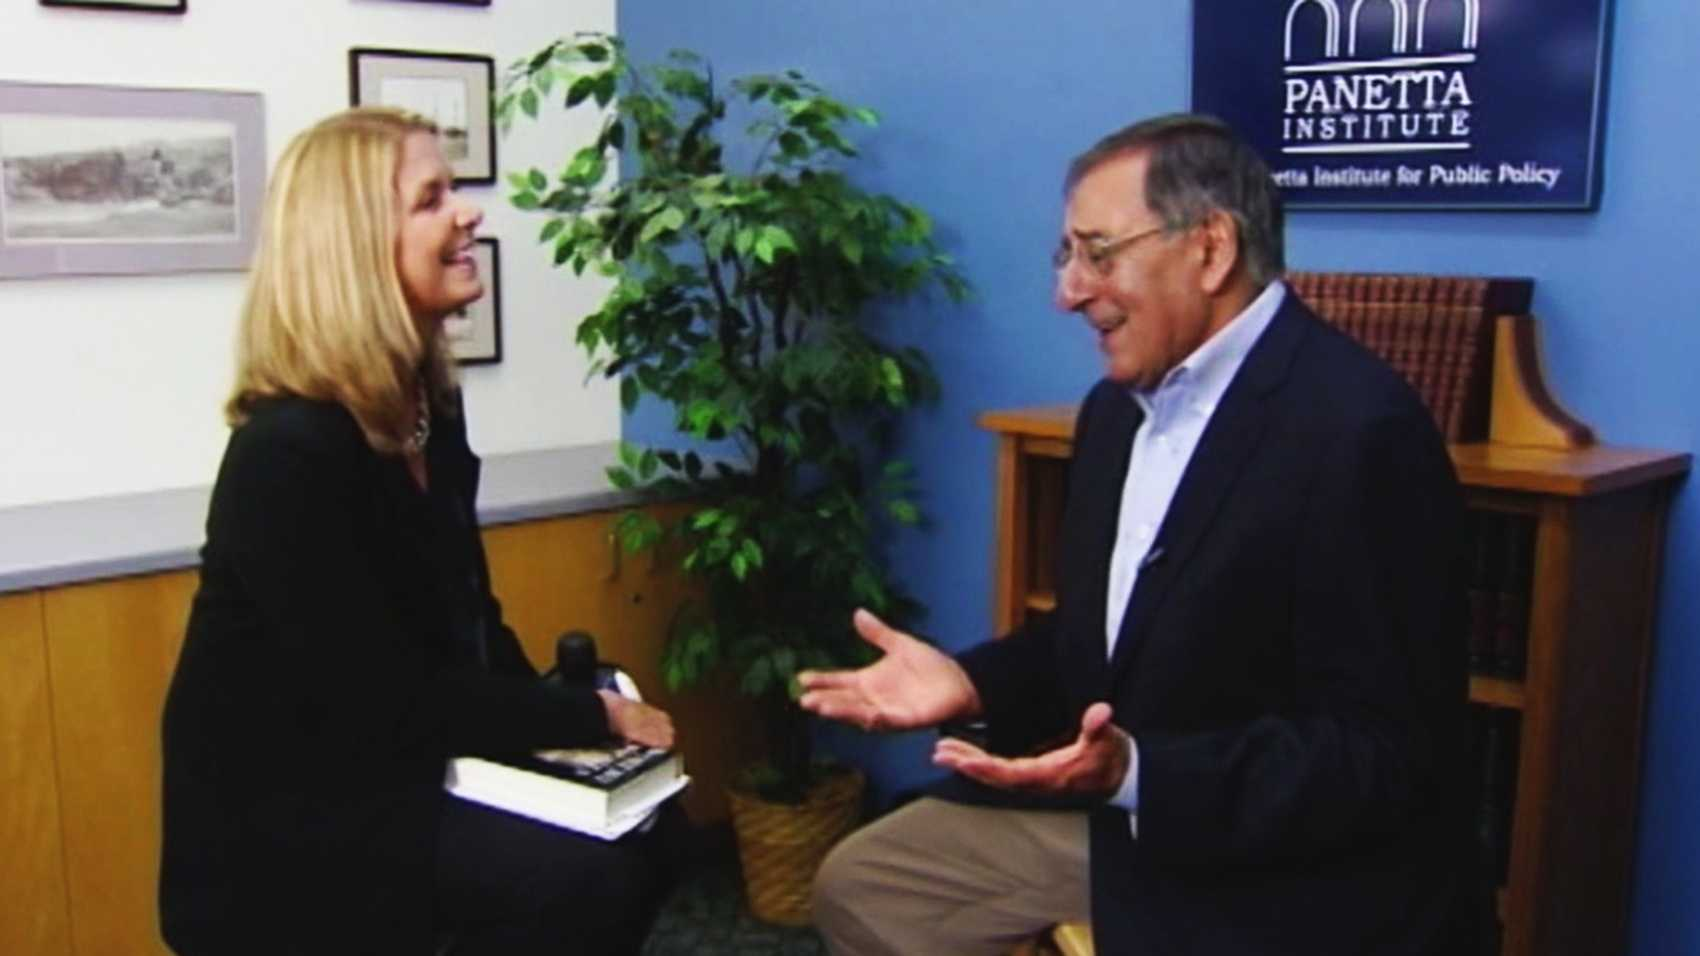 Erin Clark interviews Leon Panetta at the Panetta Institute.